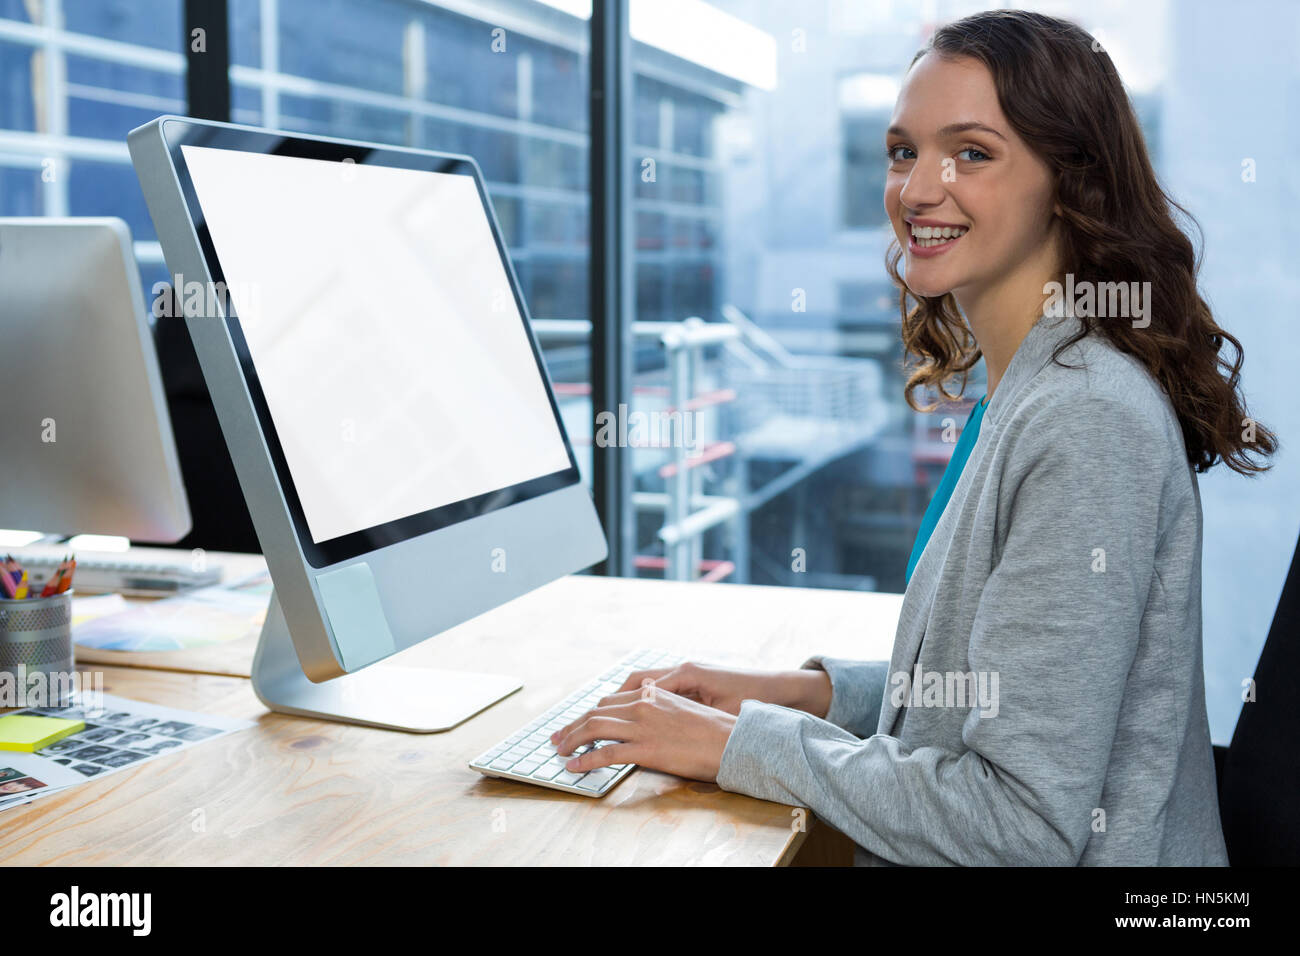 Portrait of female graphic designer working over computer at desk in office - Stock Image